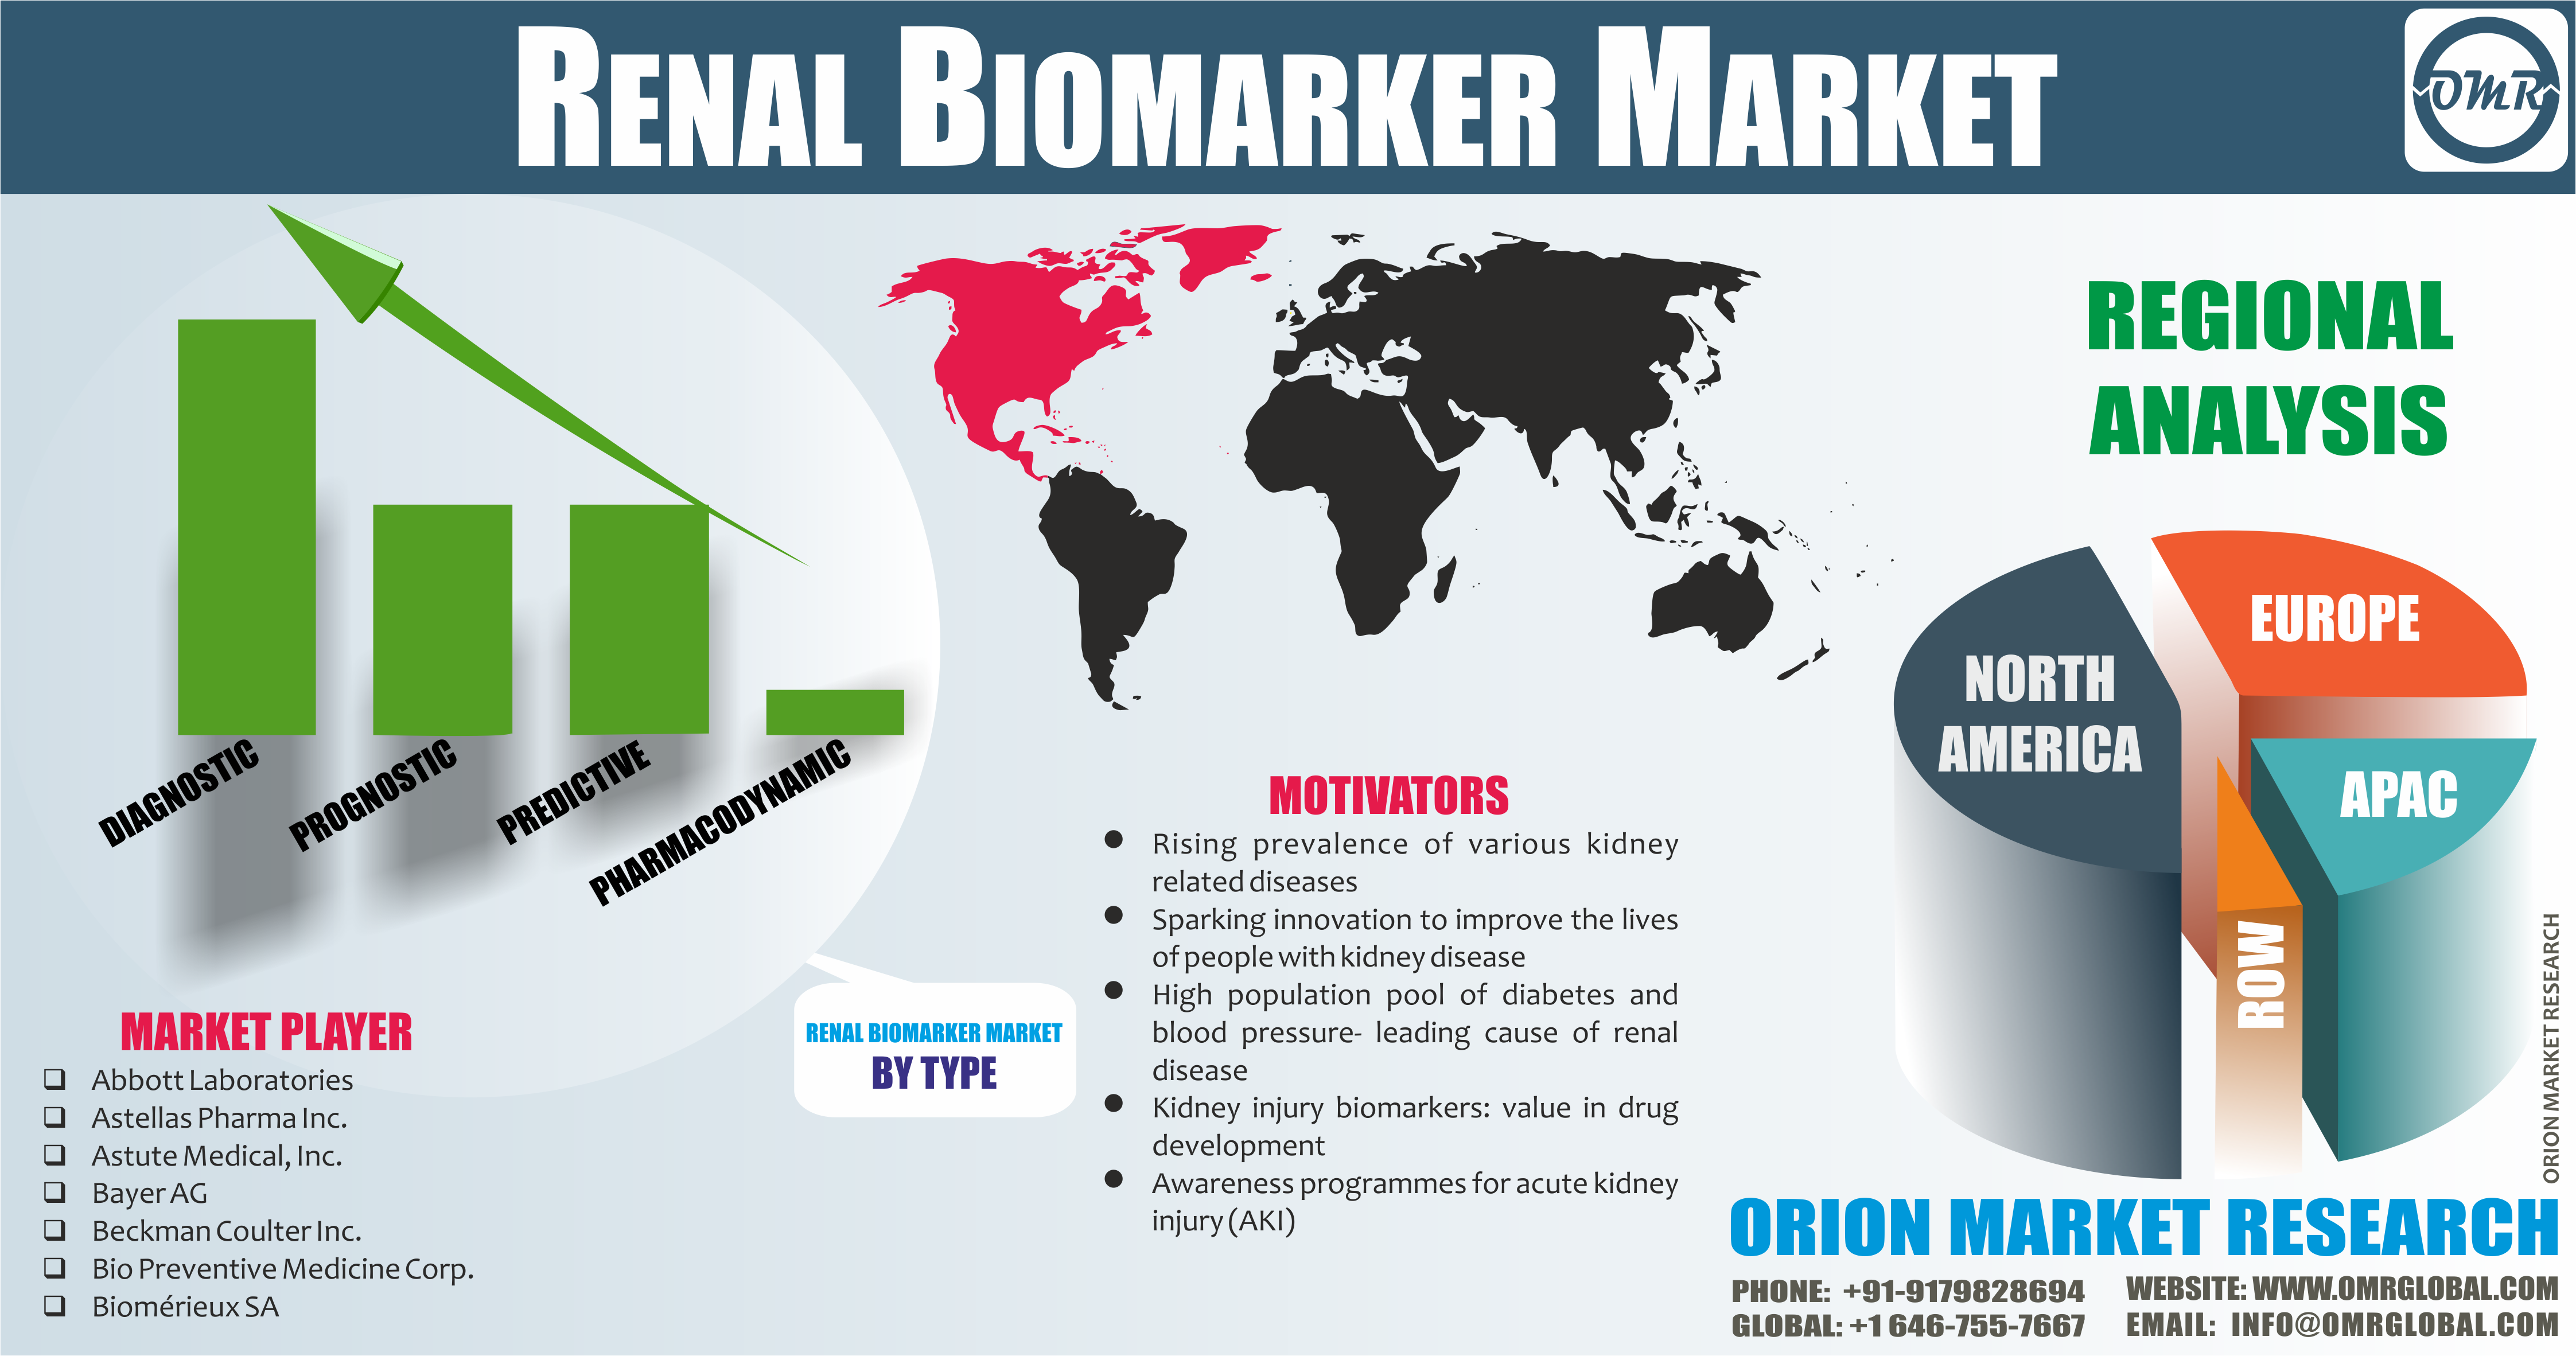 Renal Biomarker Market Size, Share,Trends, Growth